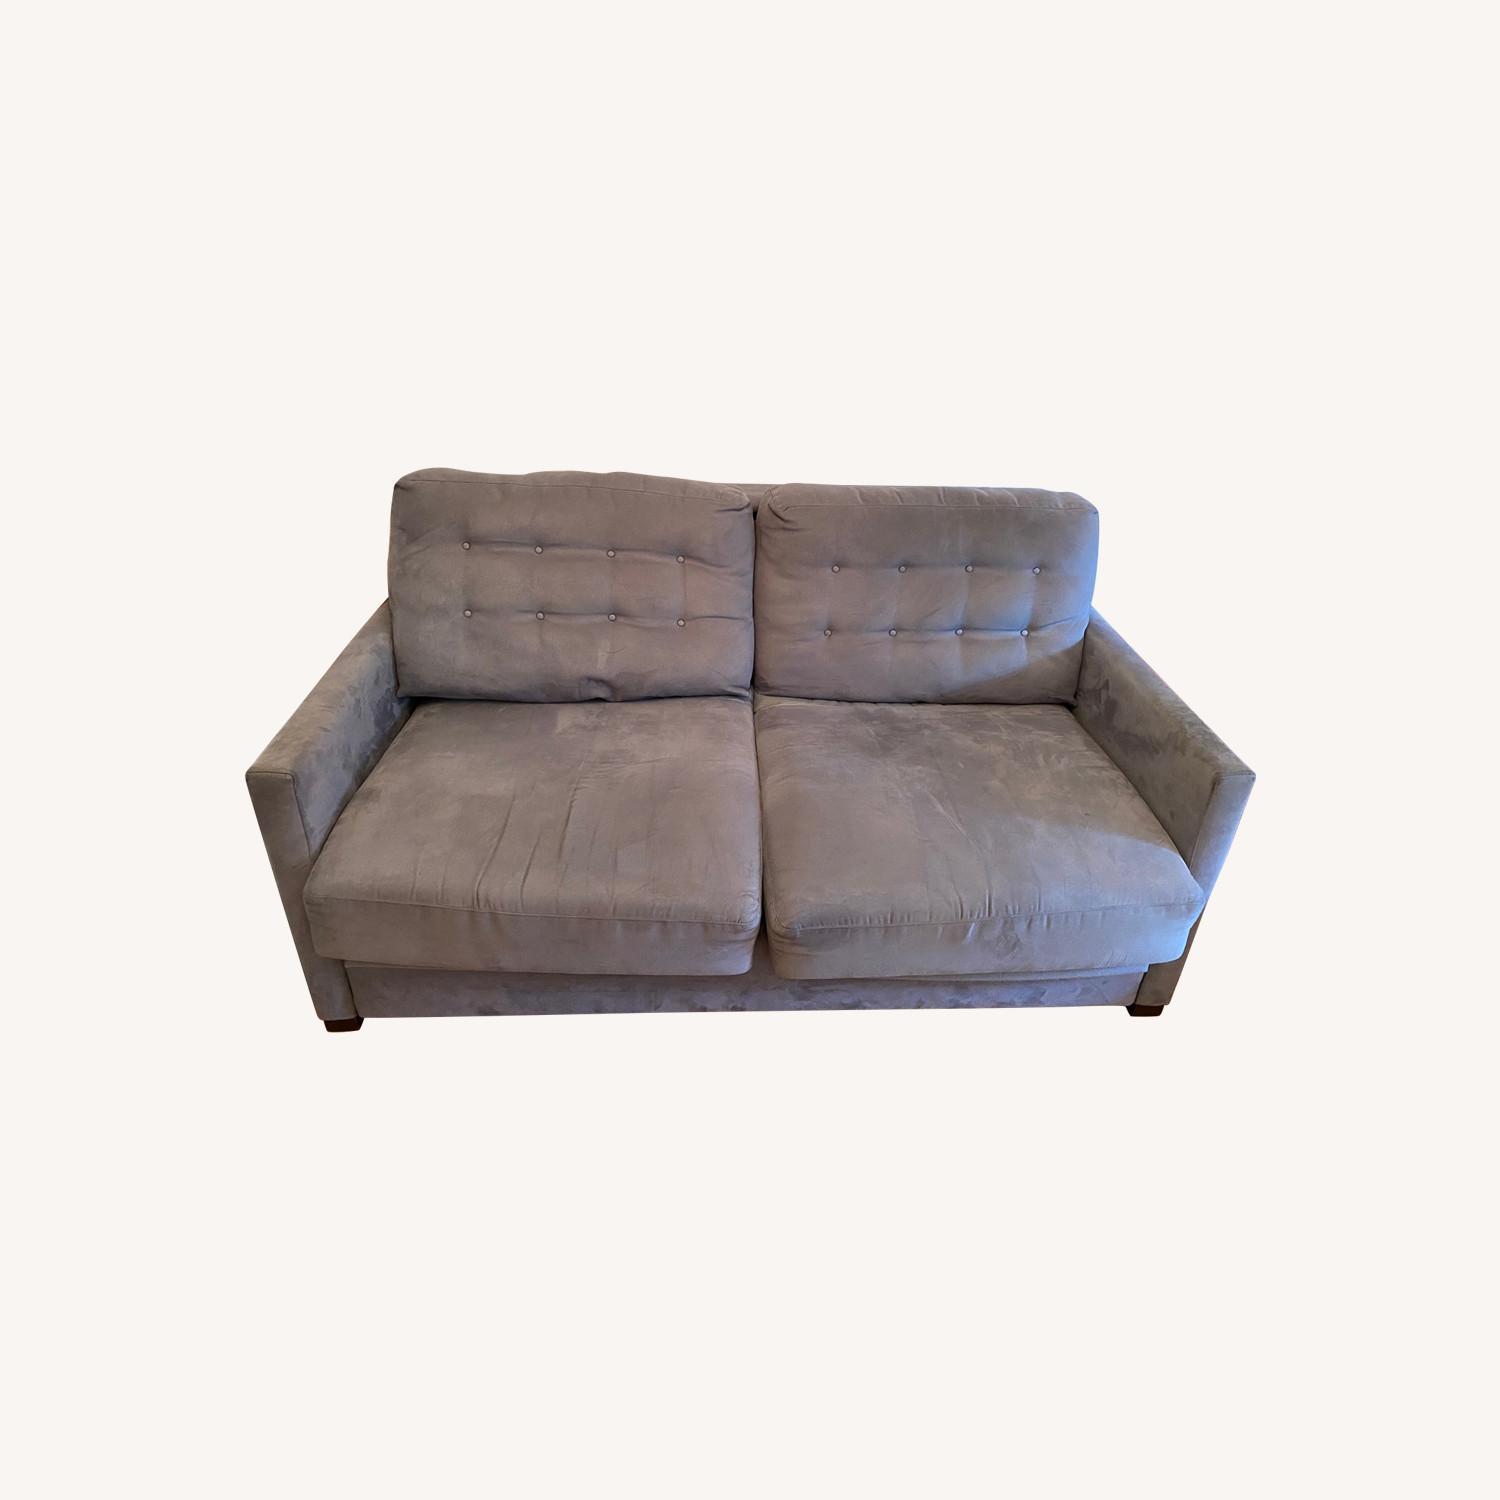 Raymour & Flanigan Pull-Out Memory Foam Sofa - image-0